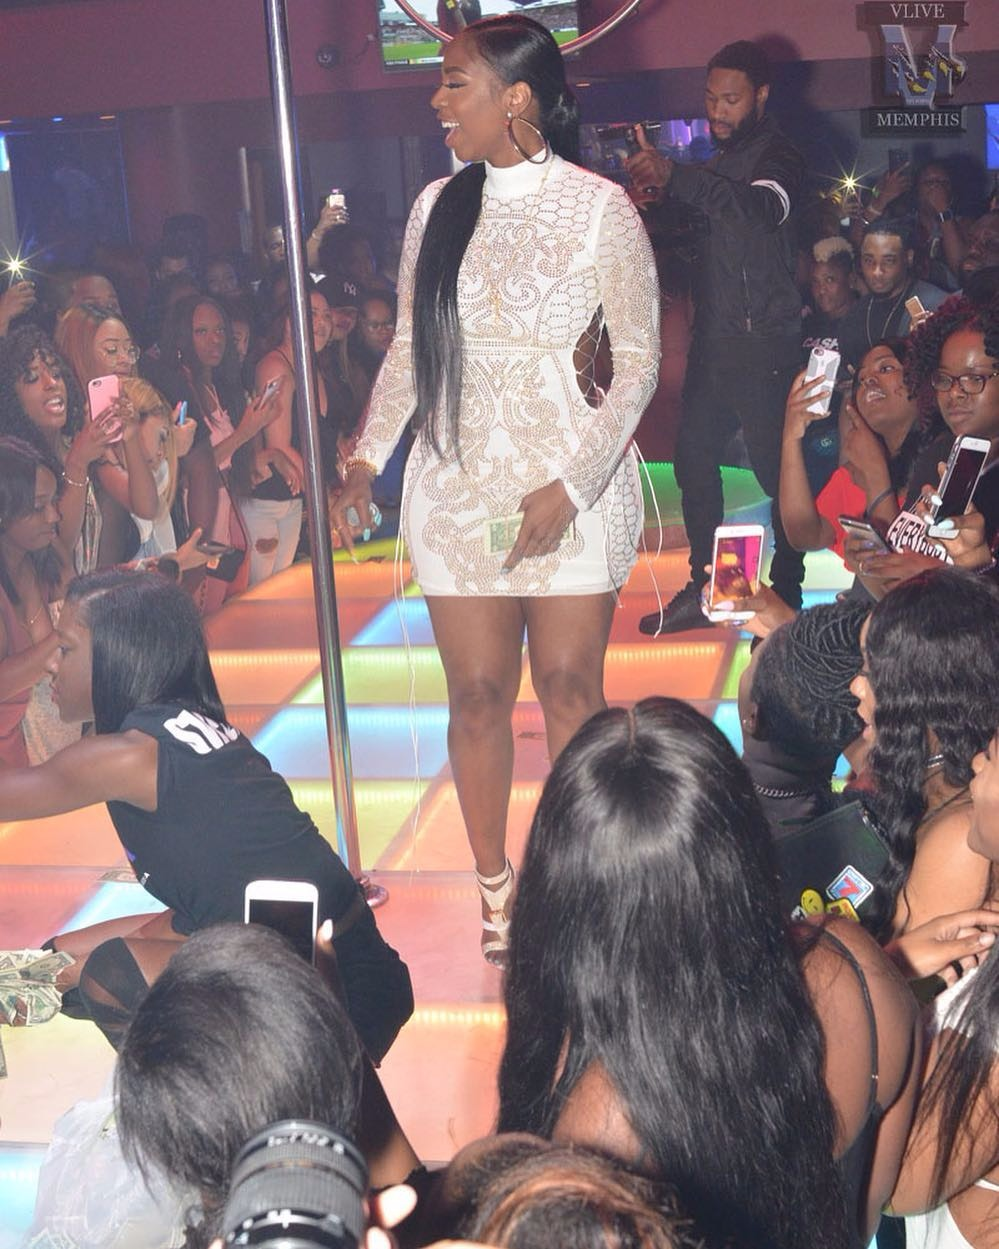 Kash Doll on stage, she's standing beside a stripper pole while her fans are pointing their phones at her